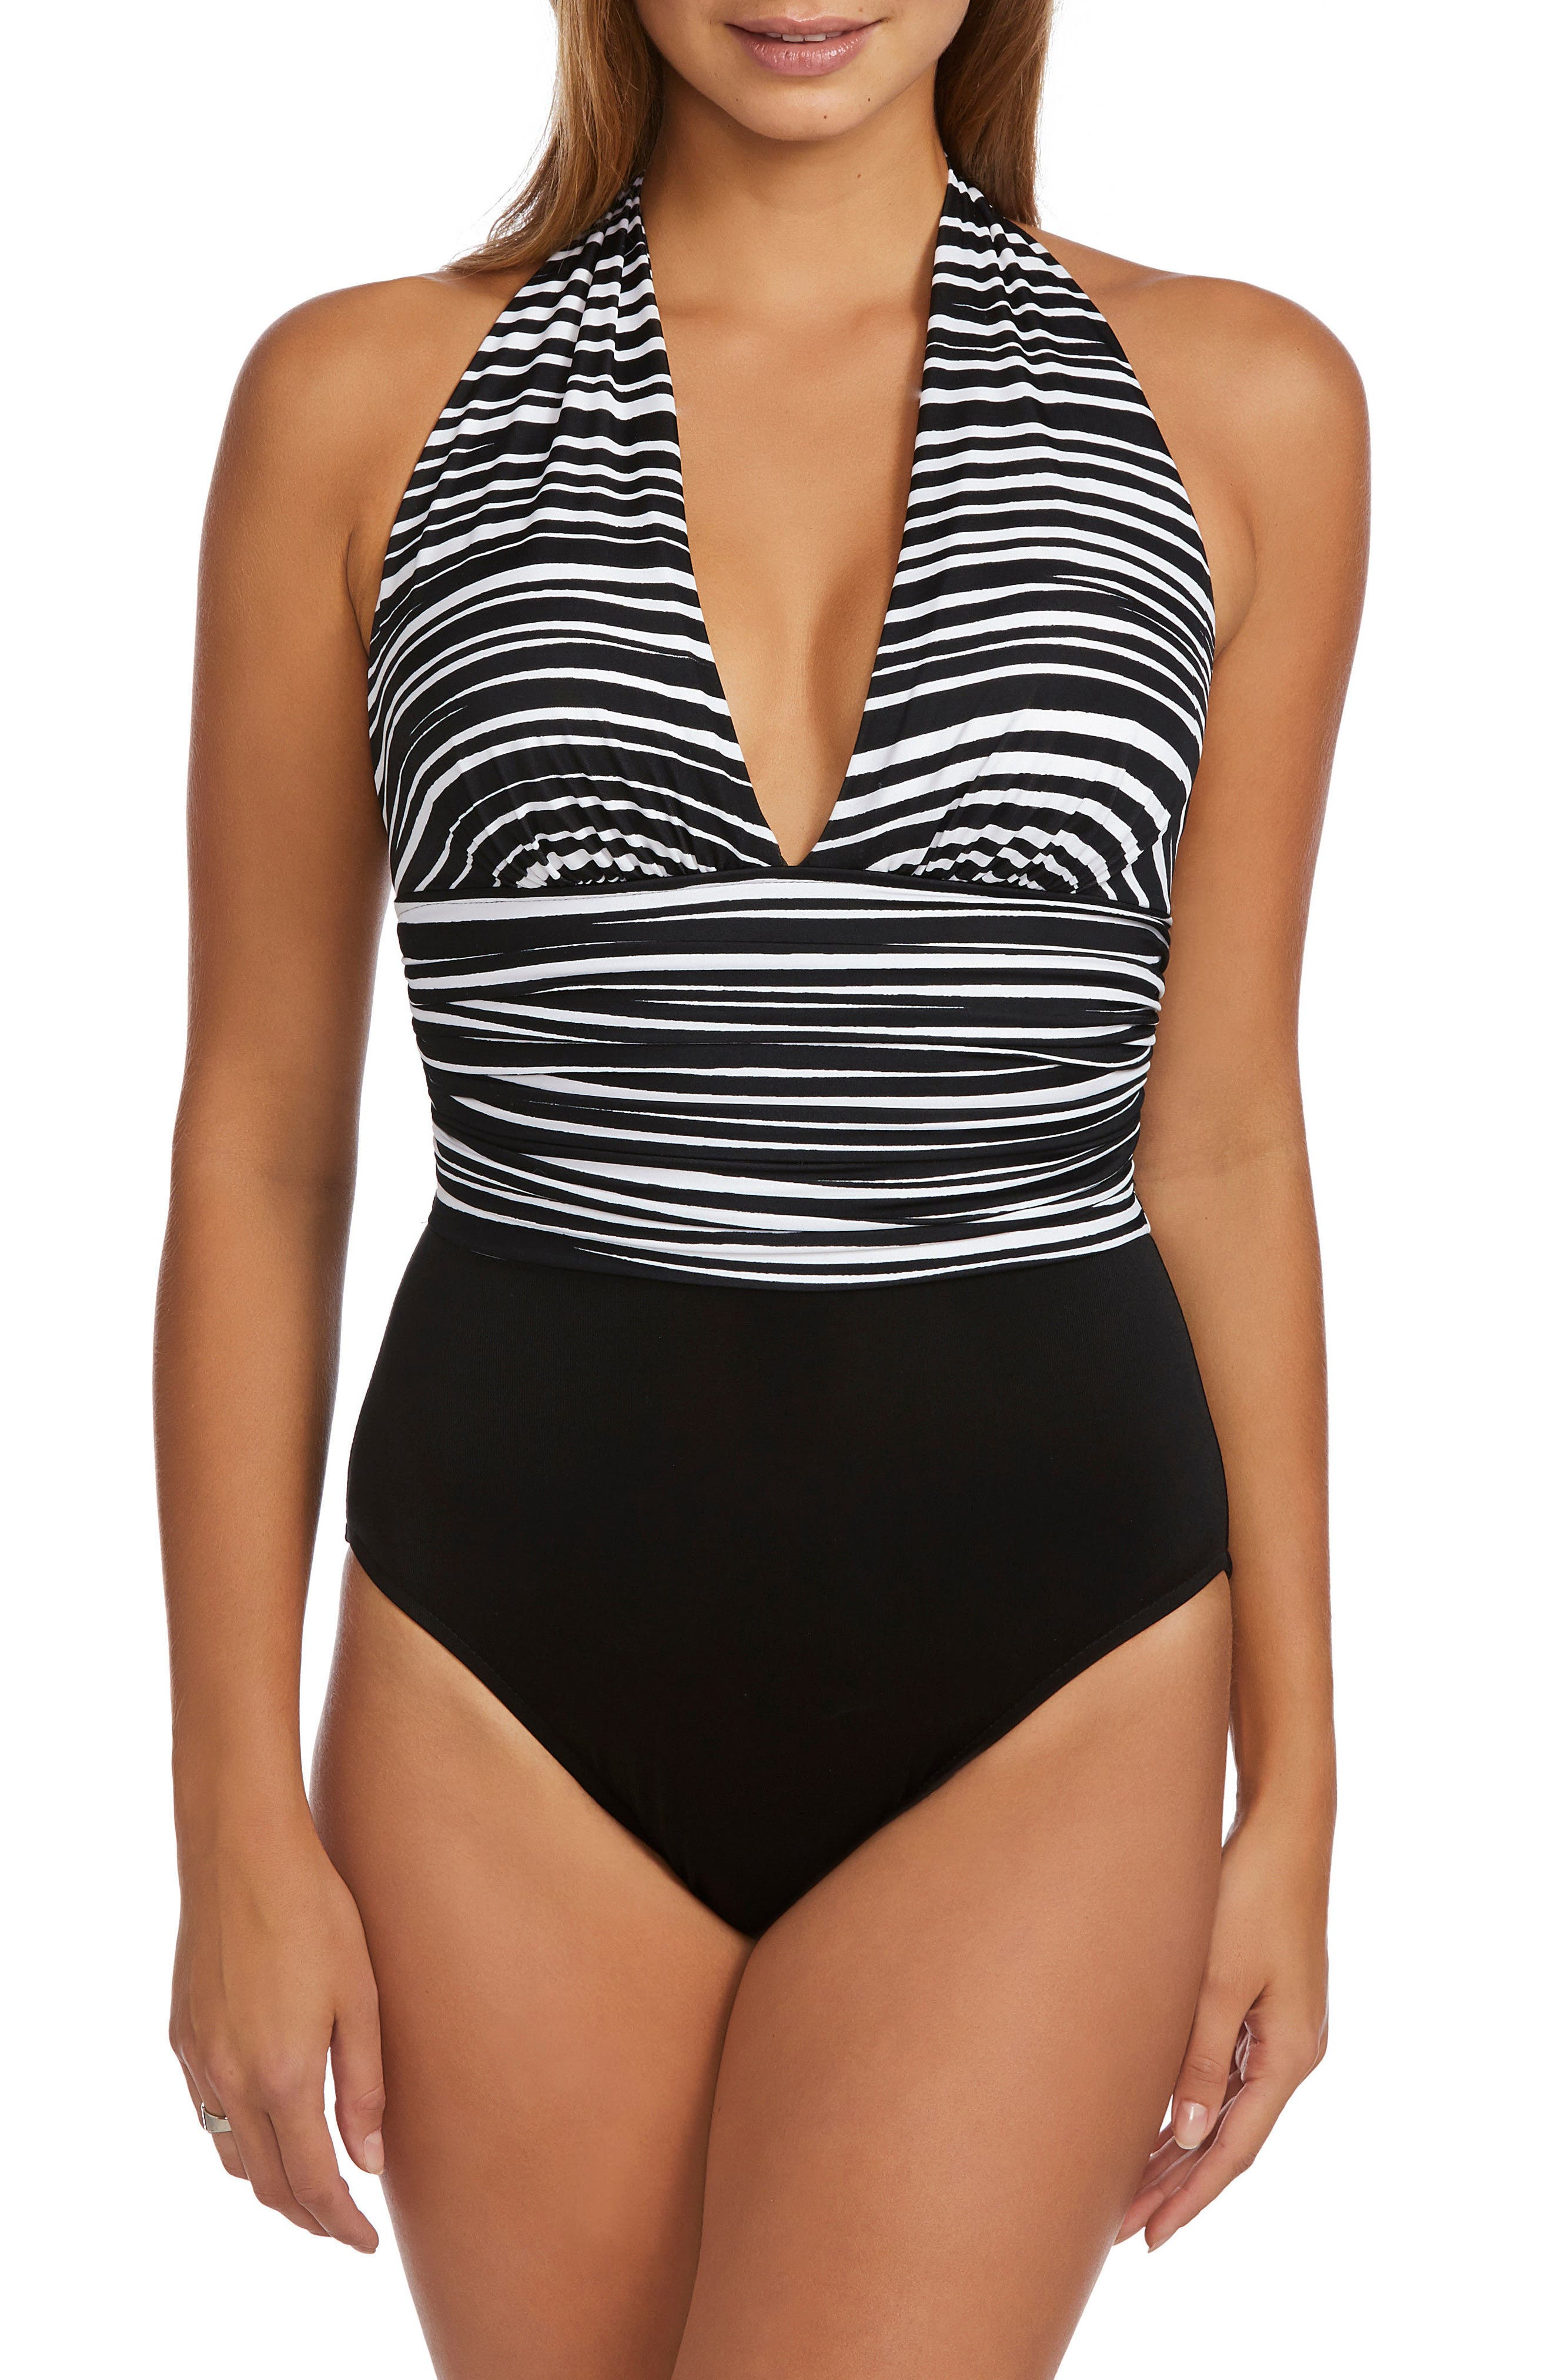 Yves Clean Lines One-Piece Swimsuit,                         Main,                         color, Black/ White